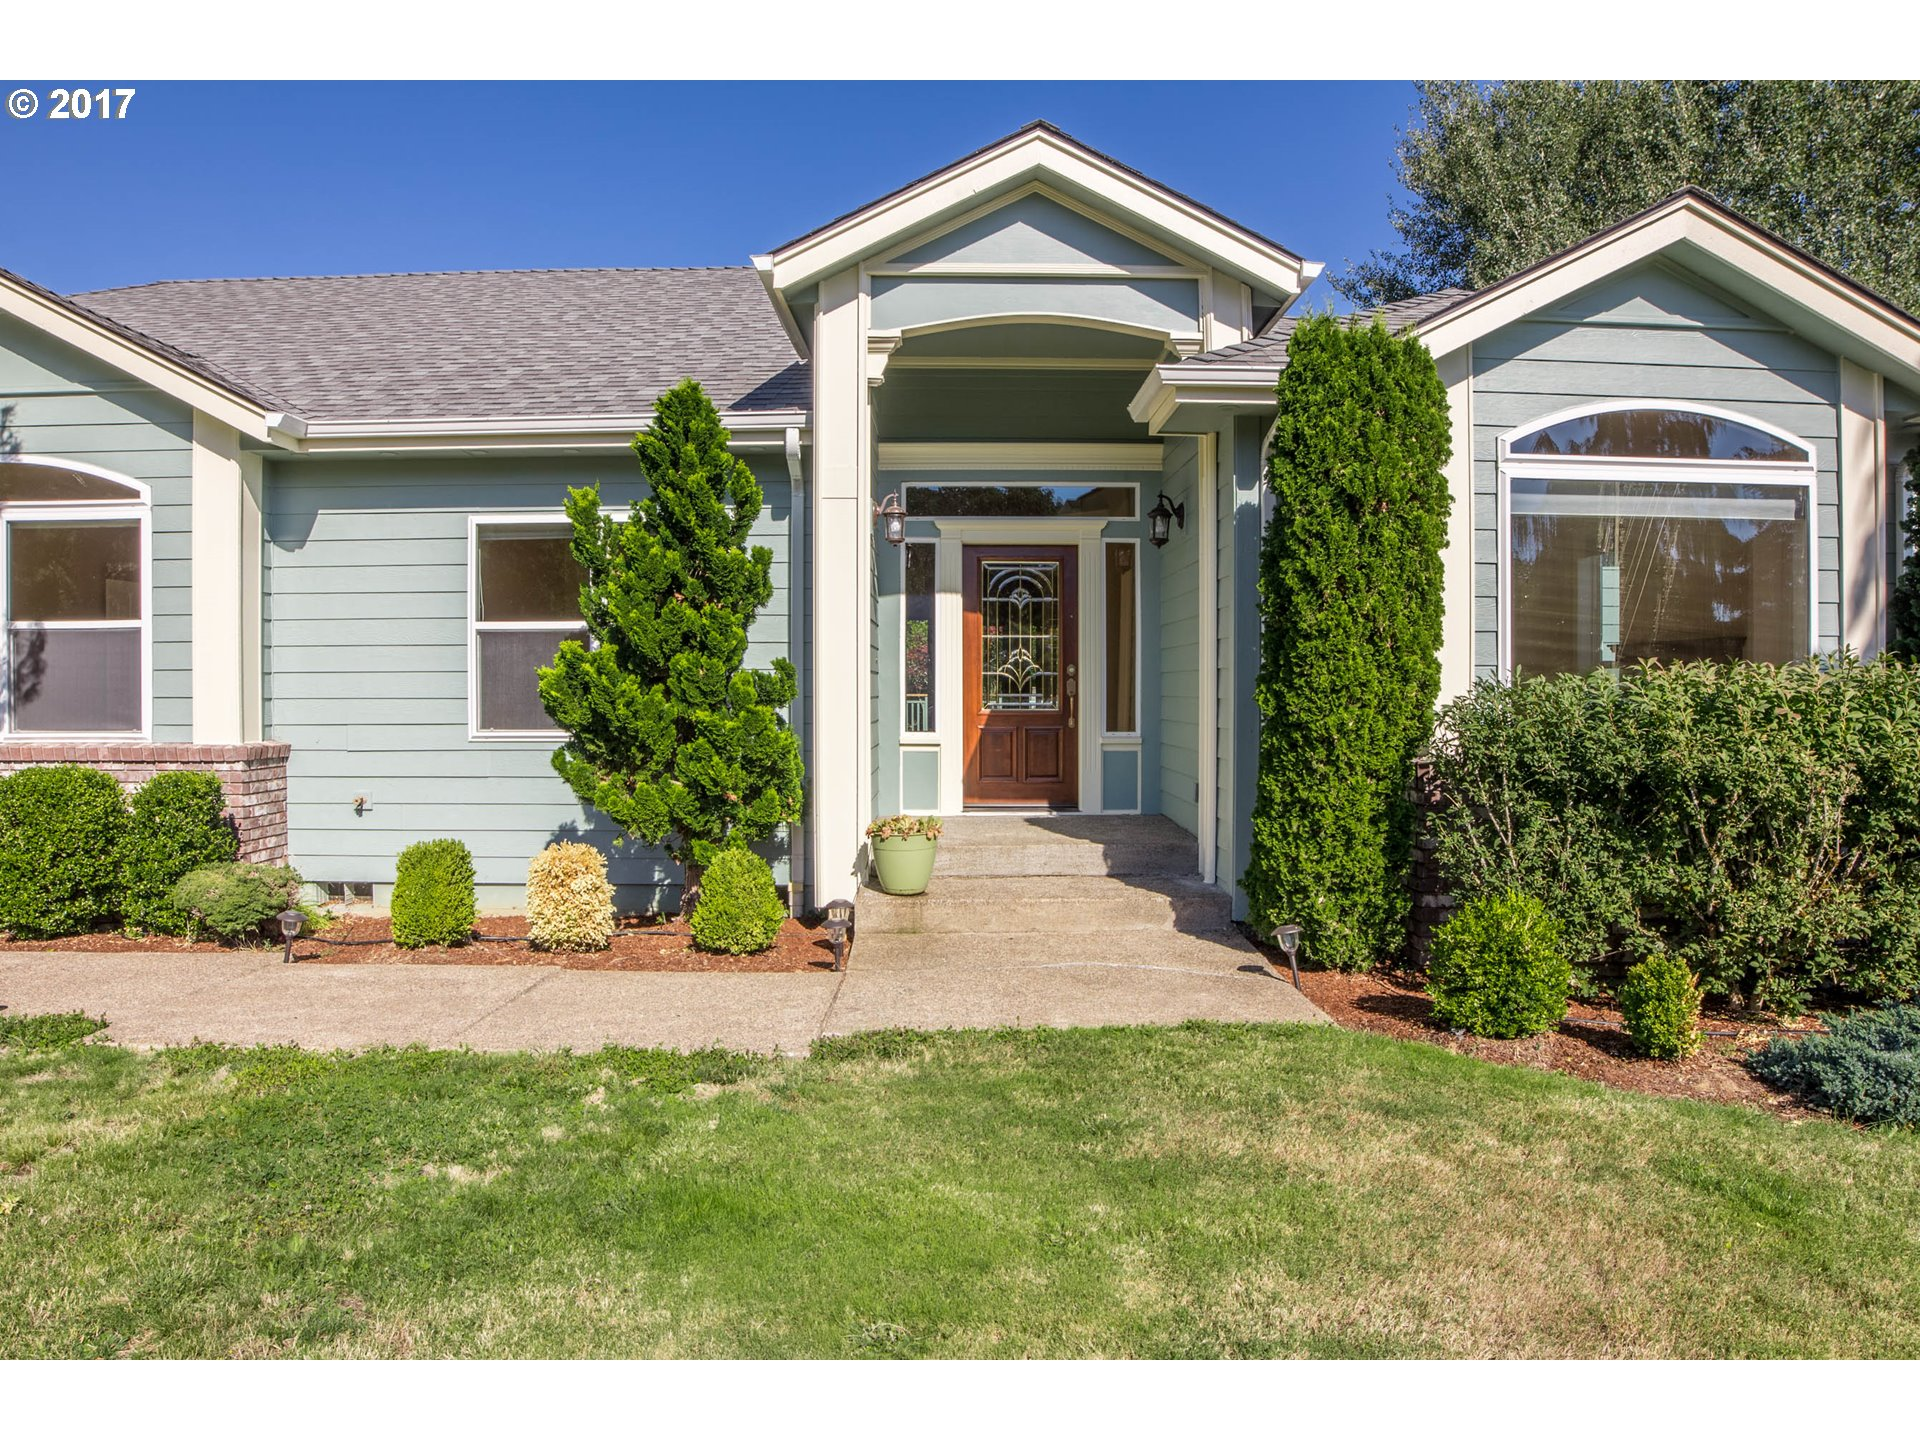 2825 NW 13TH ST, Corvallis, OR 97330